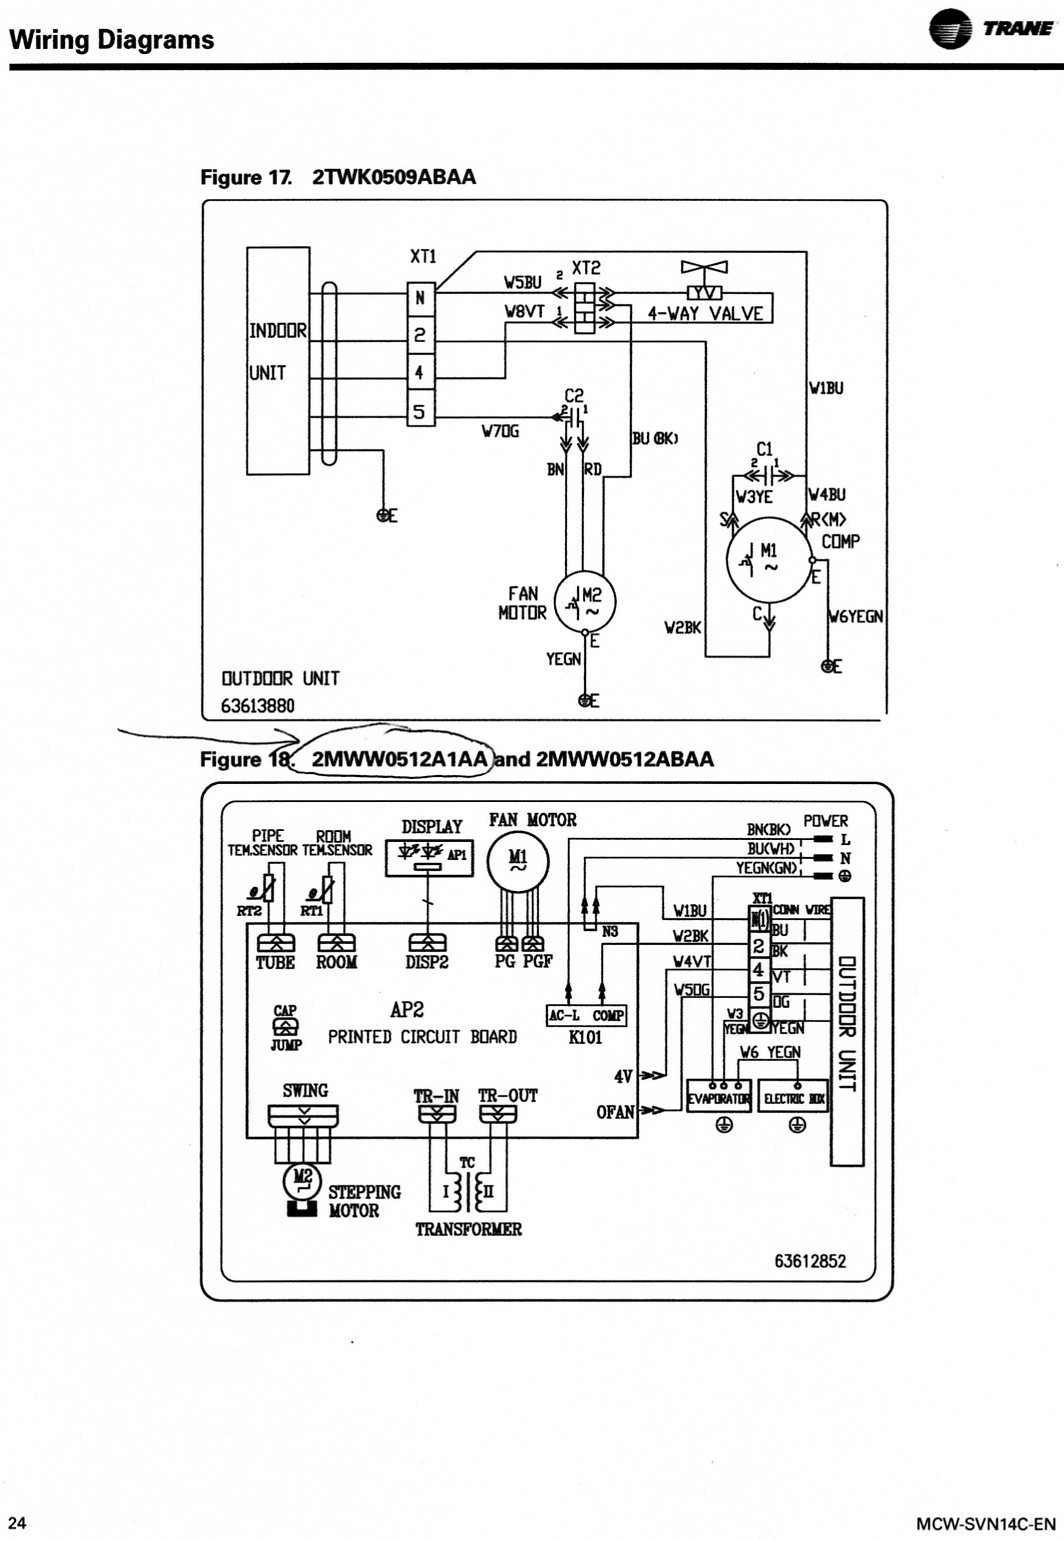 trane thermostat wiring numbers solidfonts trane heat pump thermostat wiring color code diagram and